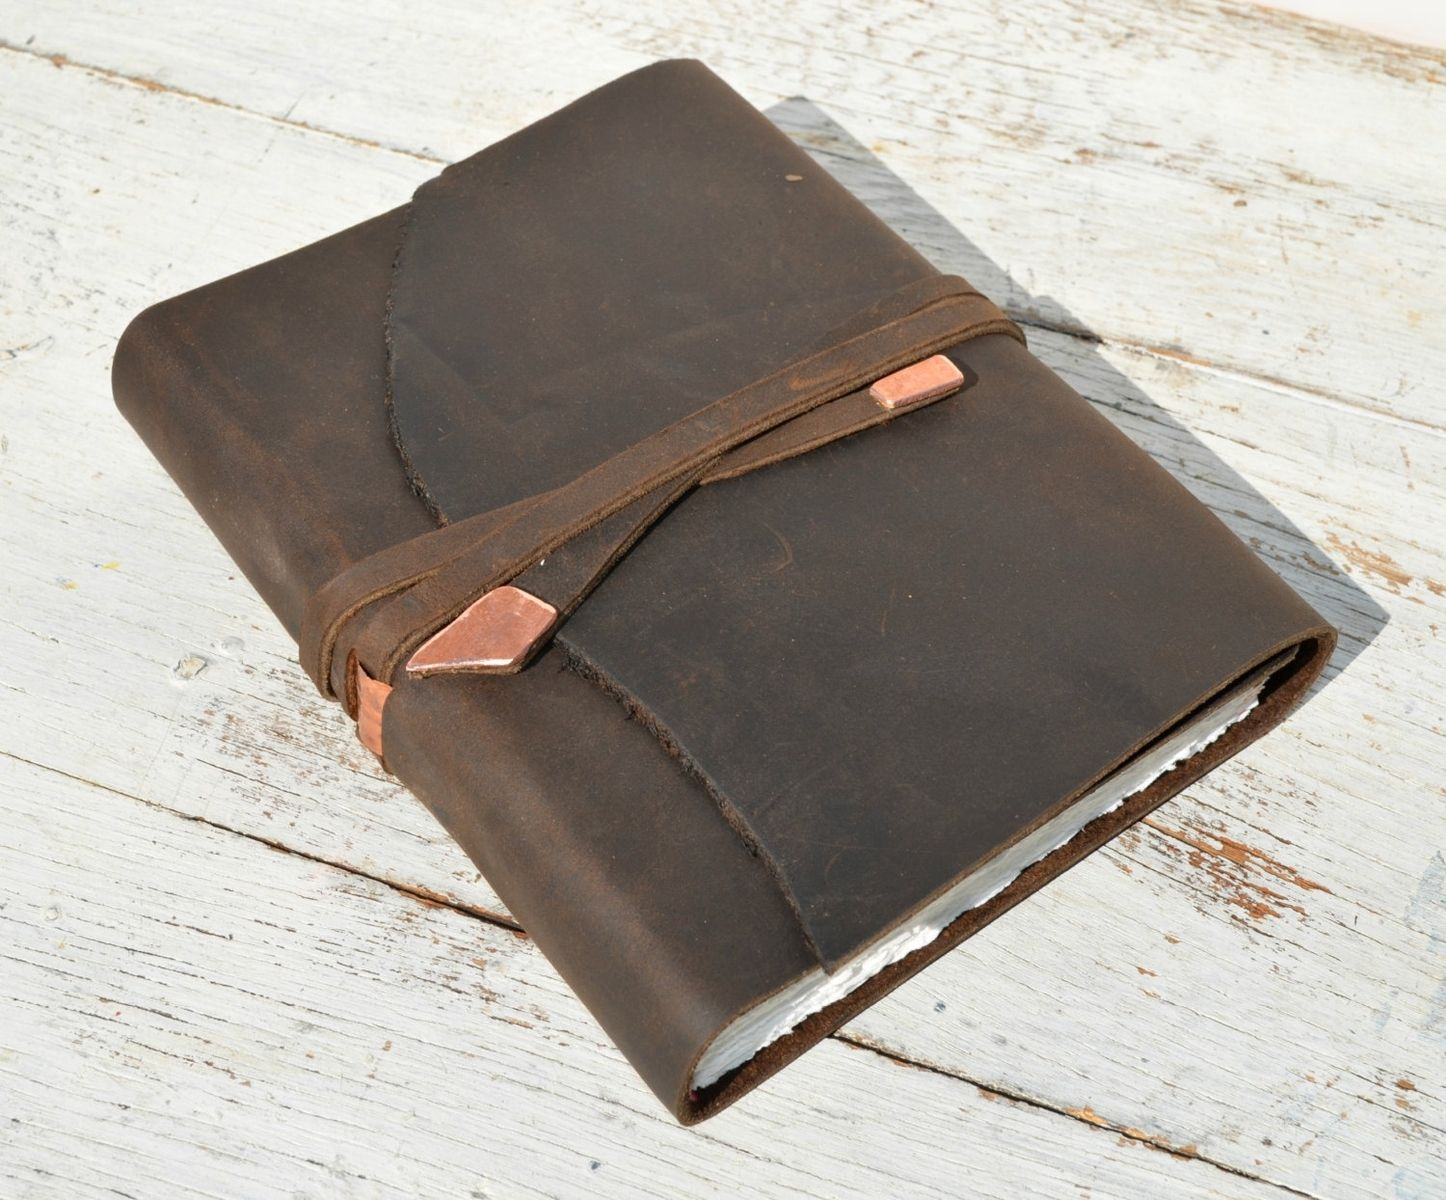 Buy A Hand Made Leather Bound Handmade Elegant Travel